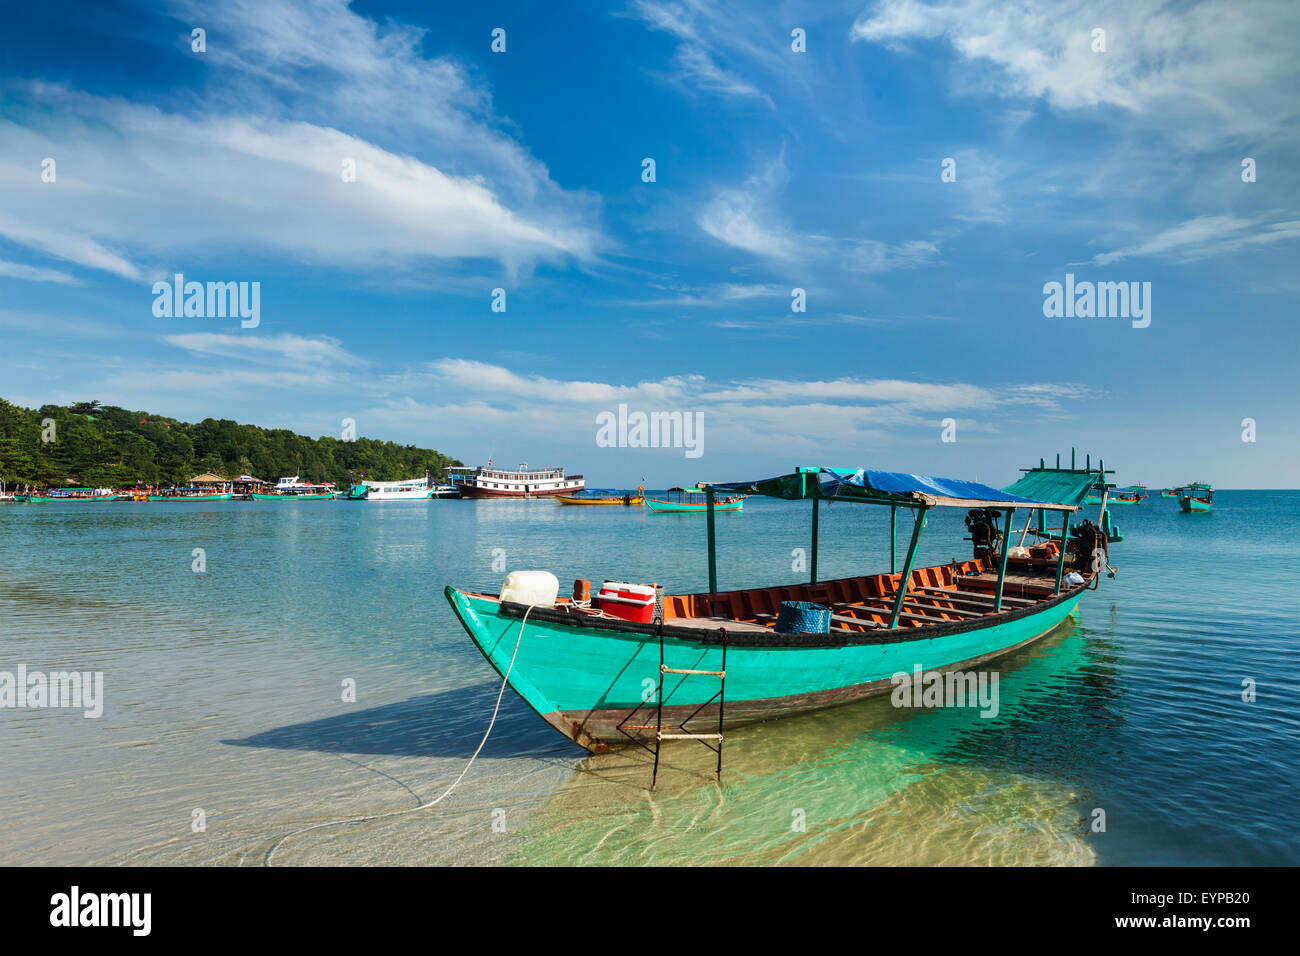 Boats in Sihanoukville - Stock Image